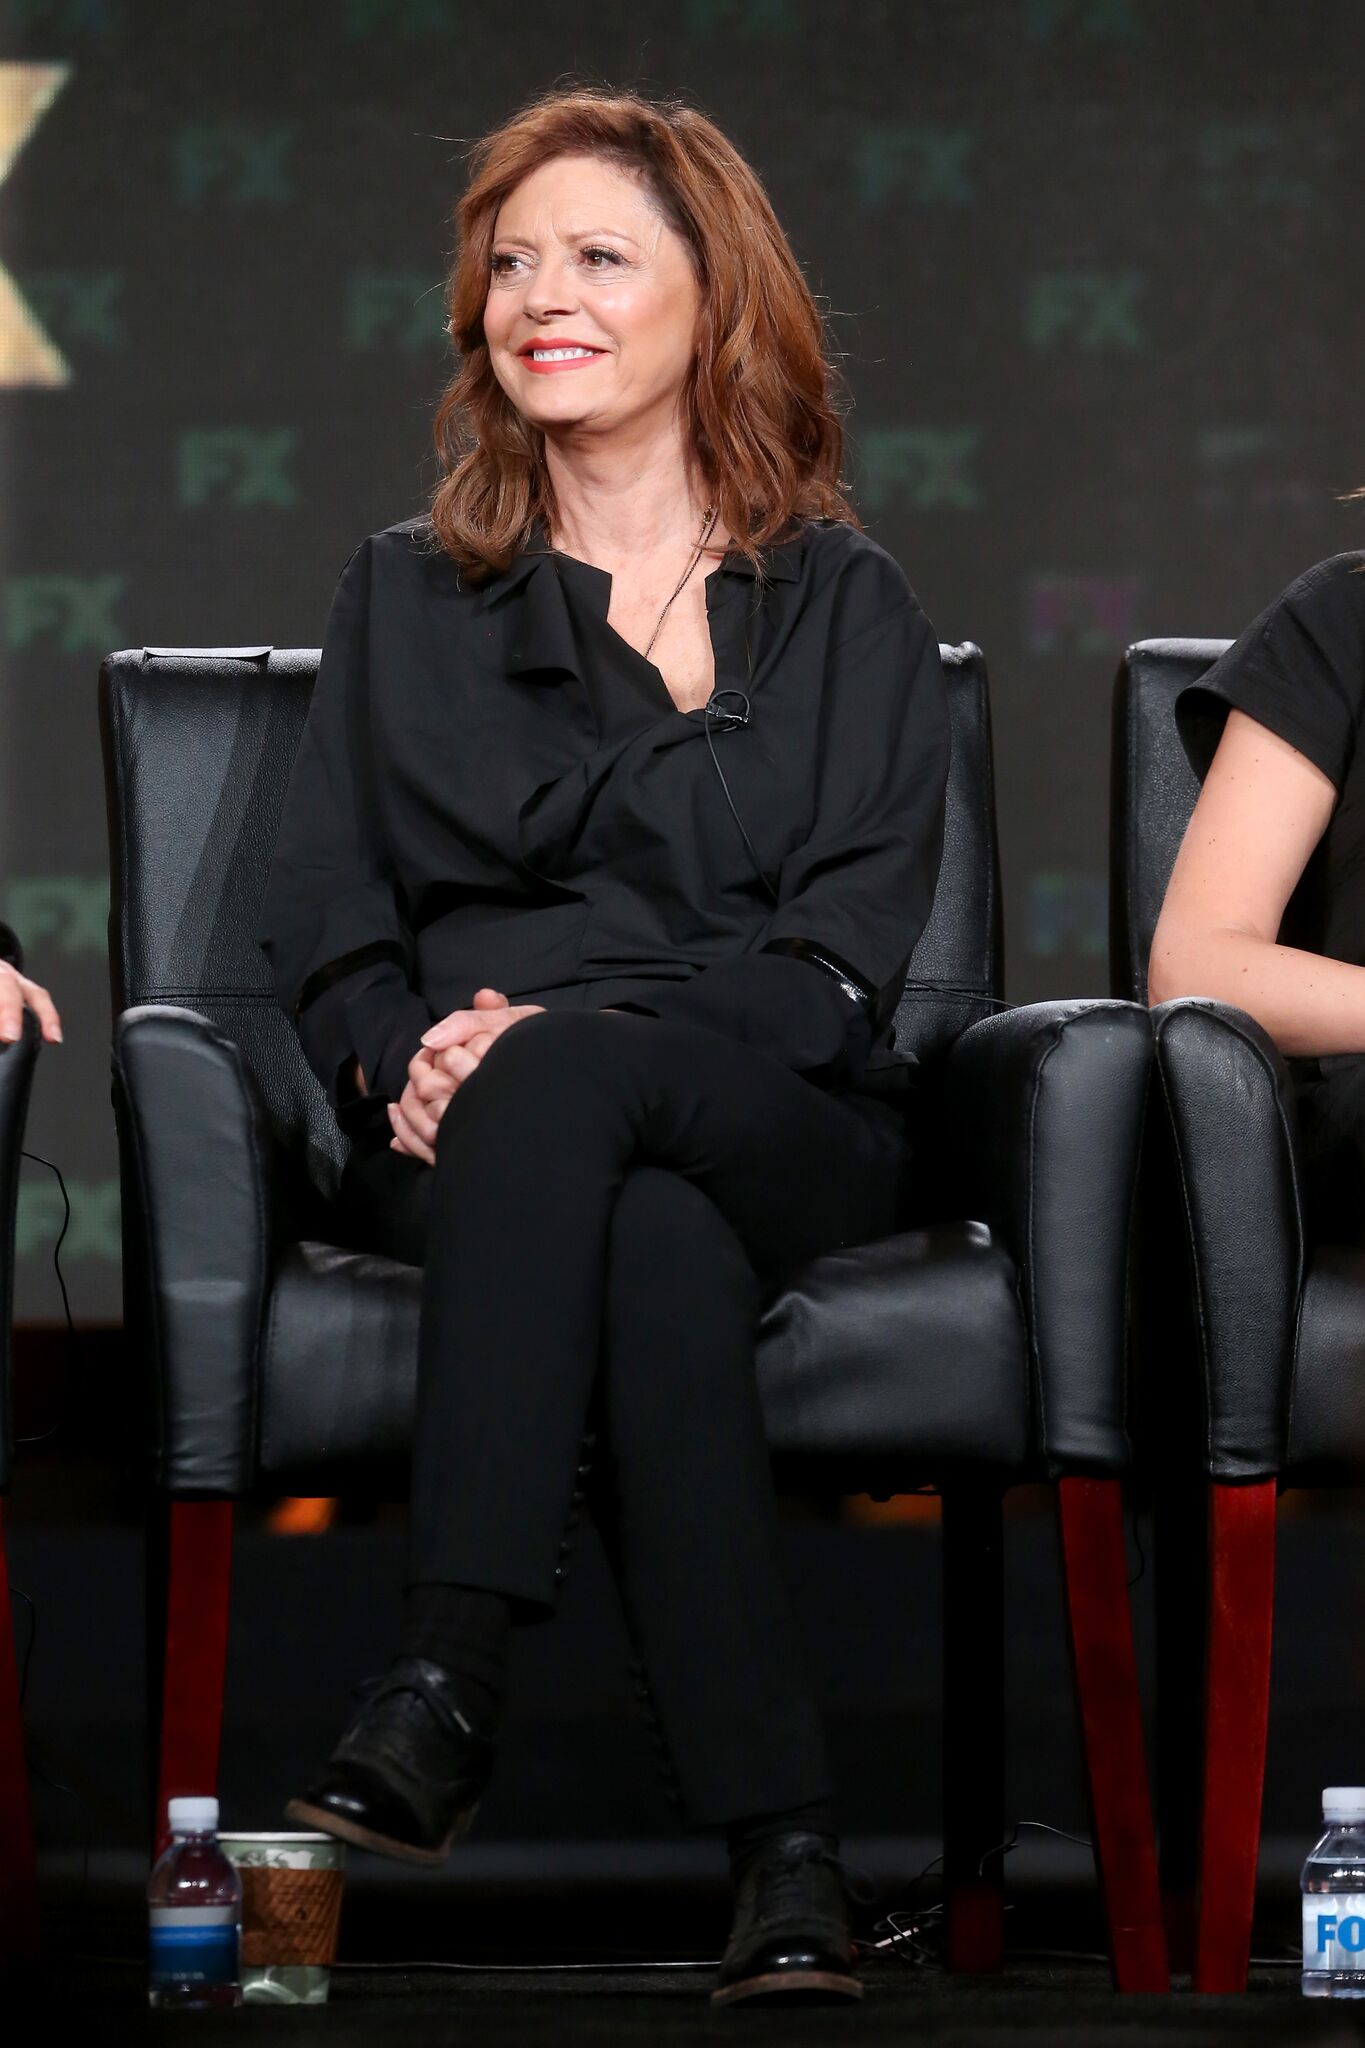 Susan Sarandon of the television show 'Feud' speaks onstage during the FX portion of the 2017 Winter Television Critics Association Press Tour | Getty Images